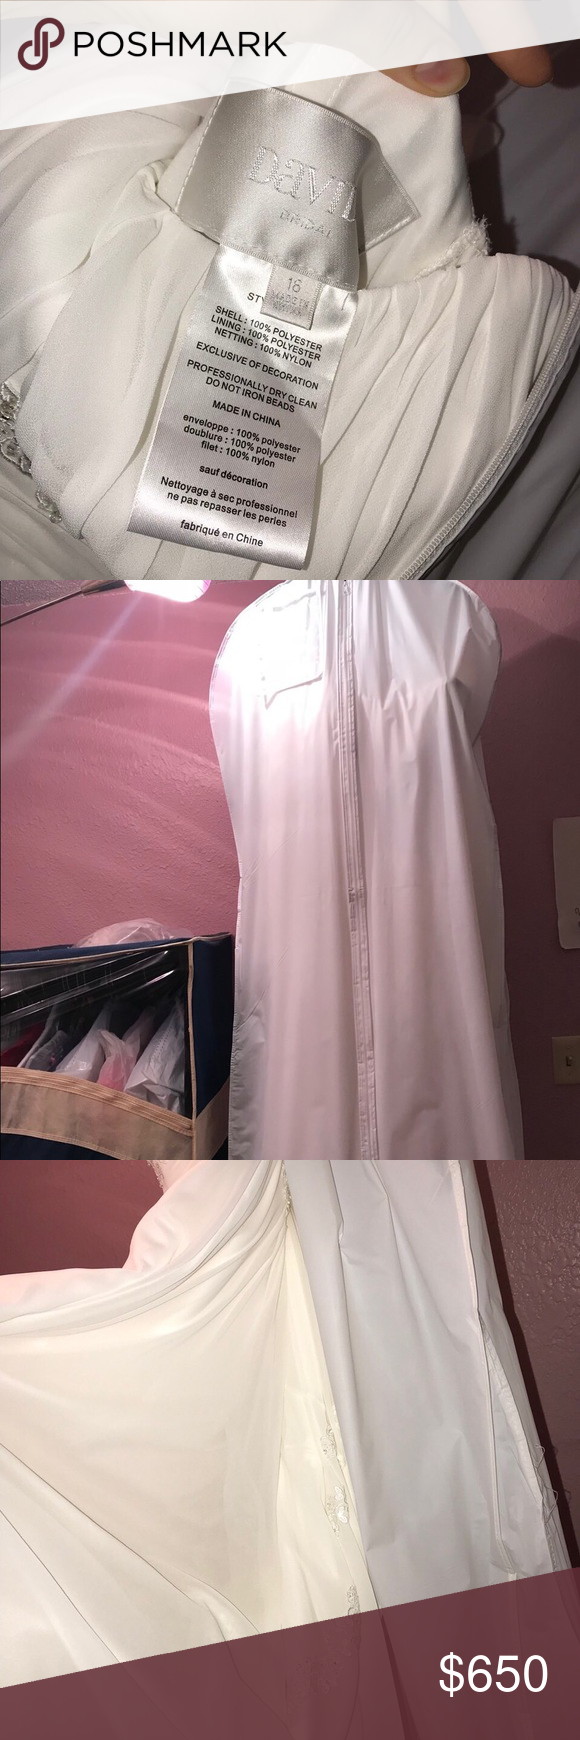 Wedding dress dry cleaning near me  White wedding dress long chiffon Very elegant and comfortable Long